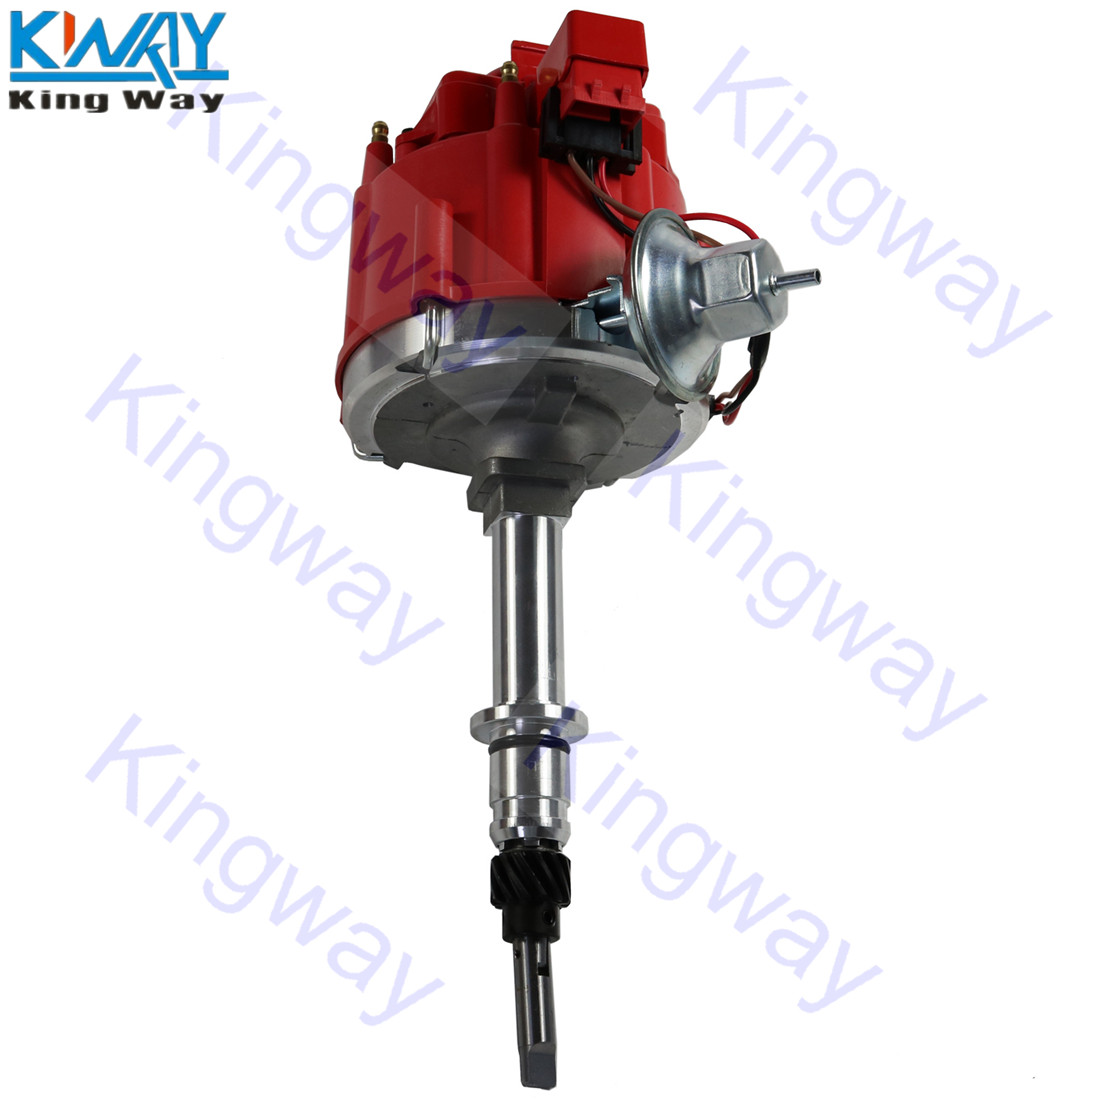 Distributor Inline 250 Chevy 6-Cylinder Ignition 6522R HEI For G-M Way-Red 230 292